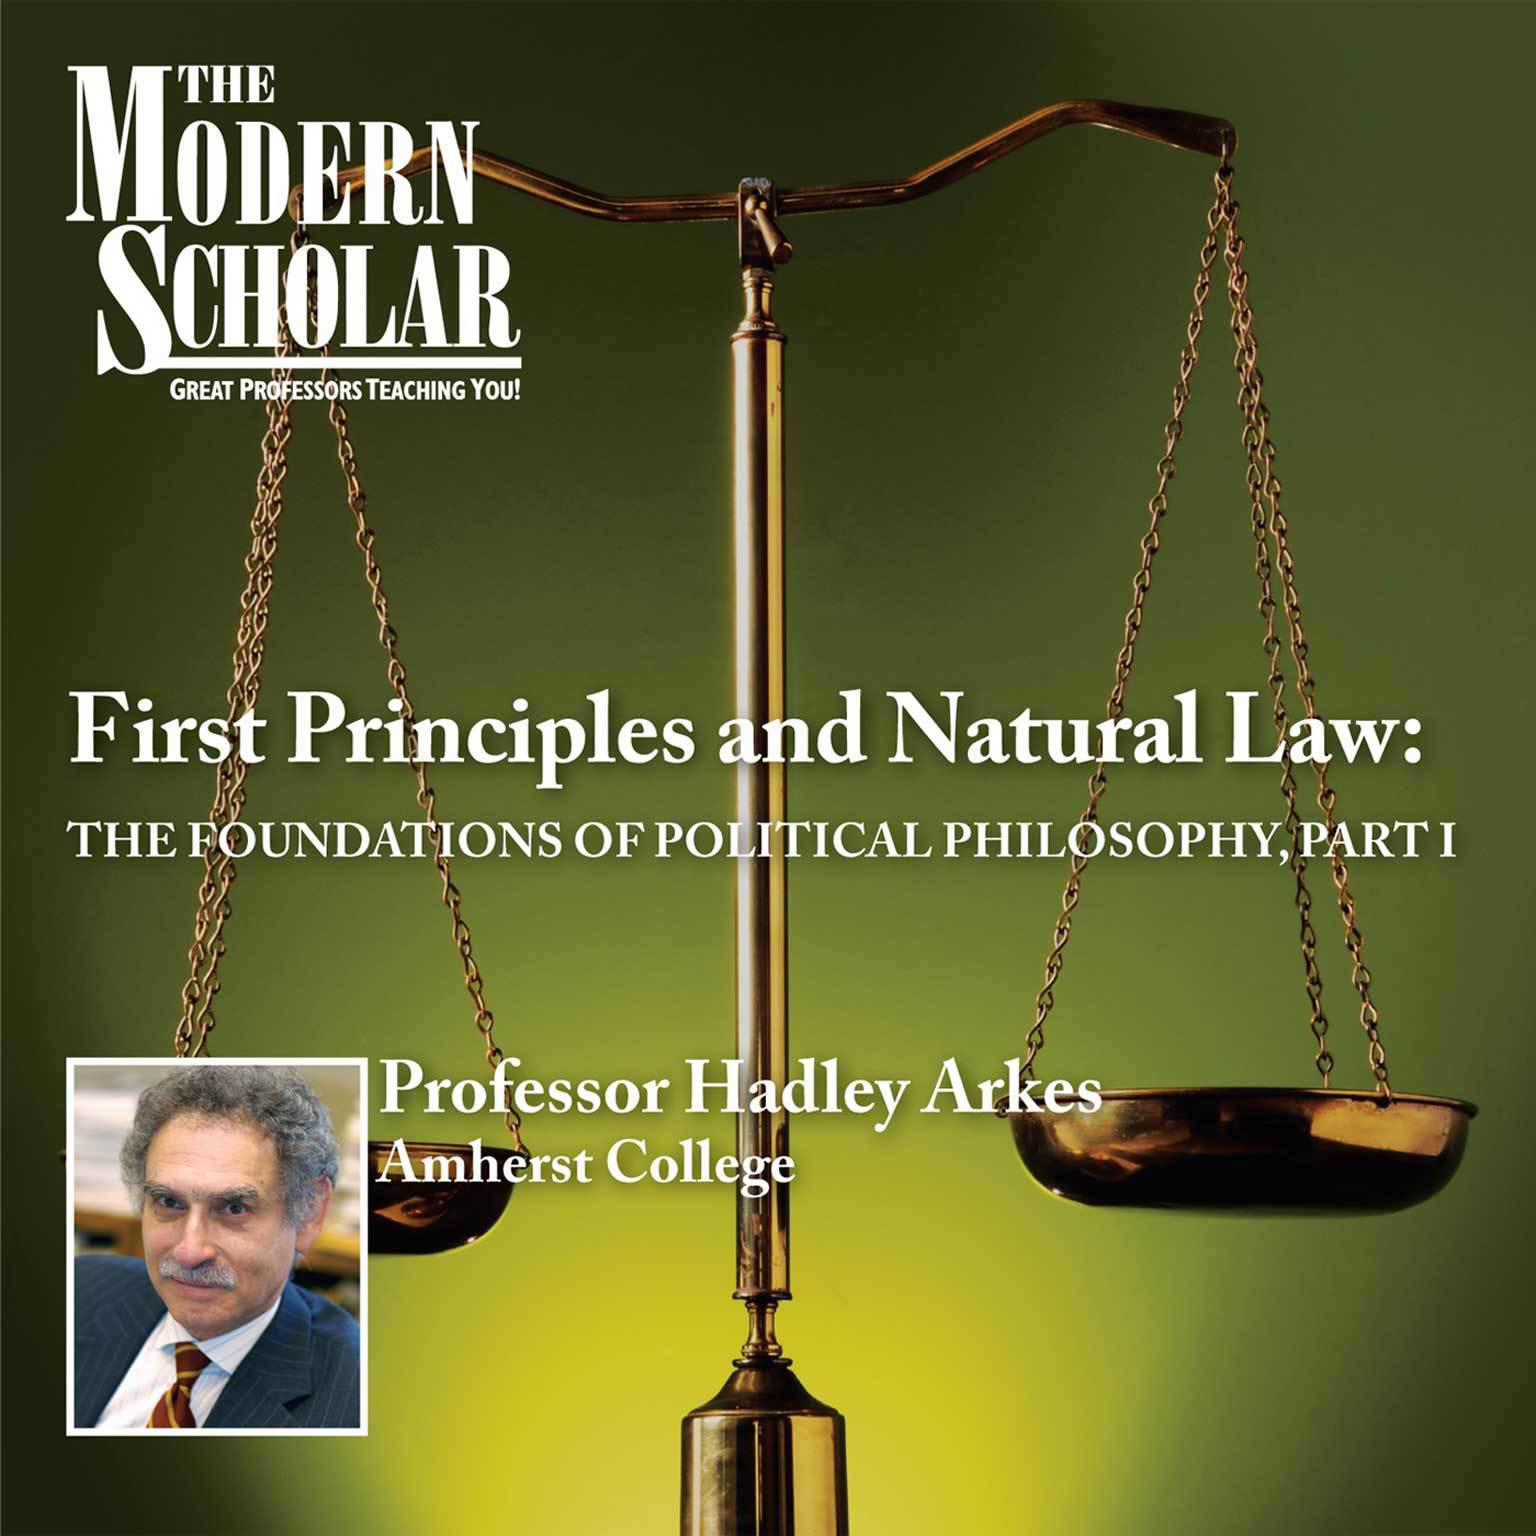 Printable First Principles & Natural Law Part I: The Foundations of Political Philosophy (part I) Audiobook Cover Art